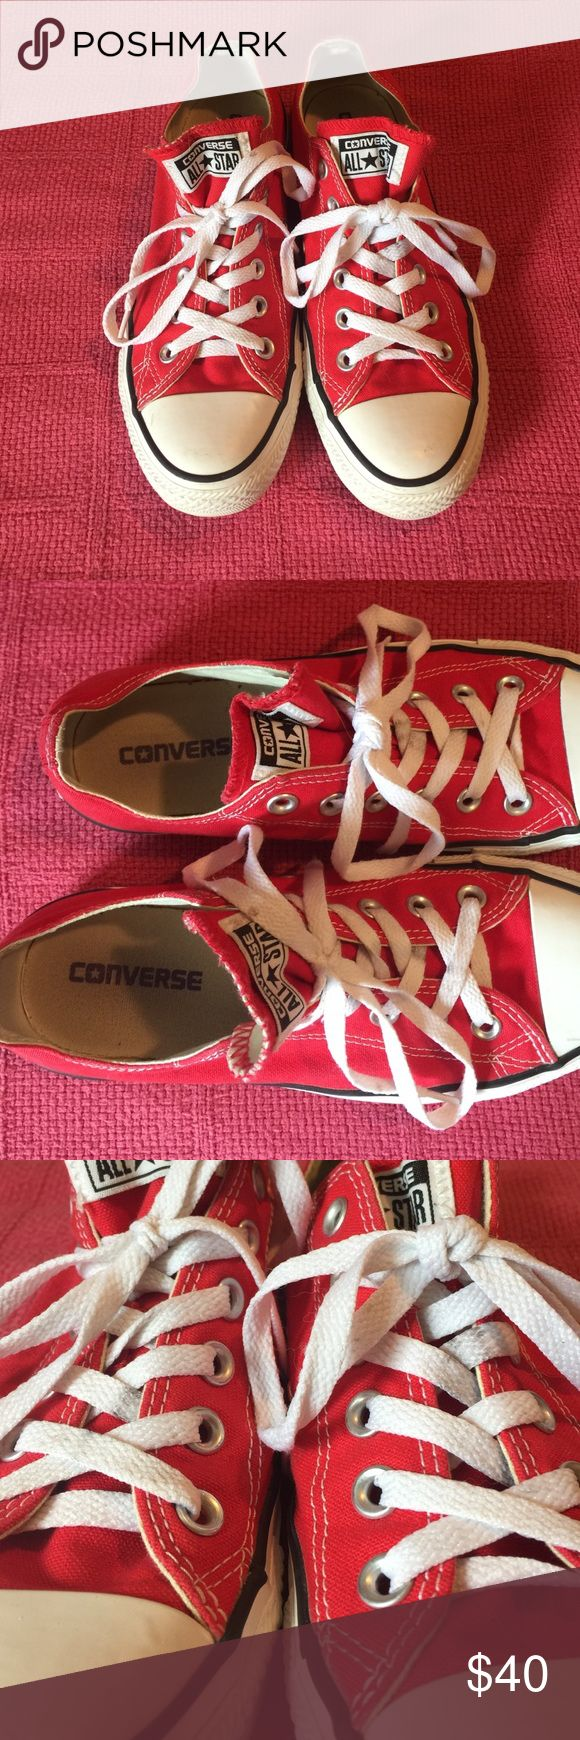 red converse almost perfect condition, a few flaws but can be taken care with a good wash. which I will do before shipping them! 😊 open to offers ❤️ NO TRADES Converse Shoes Sneakers